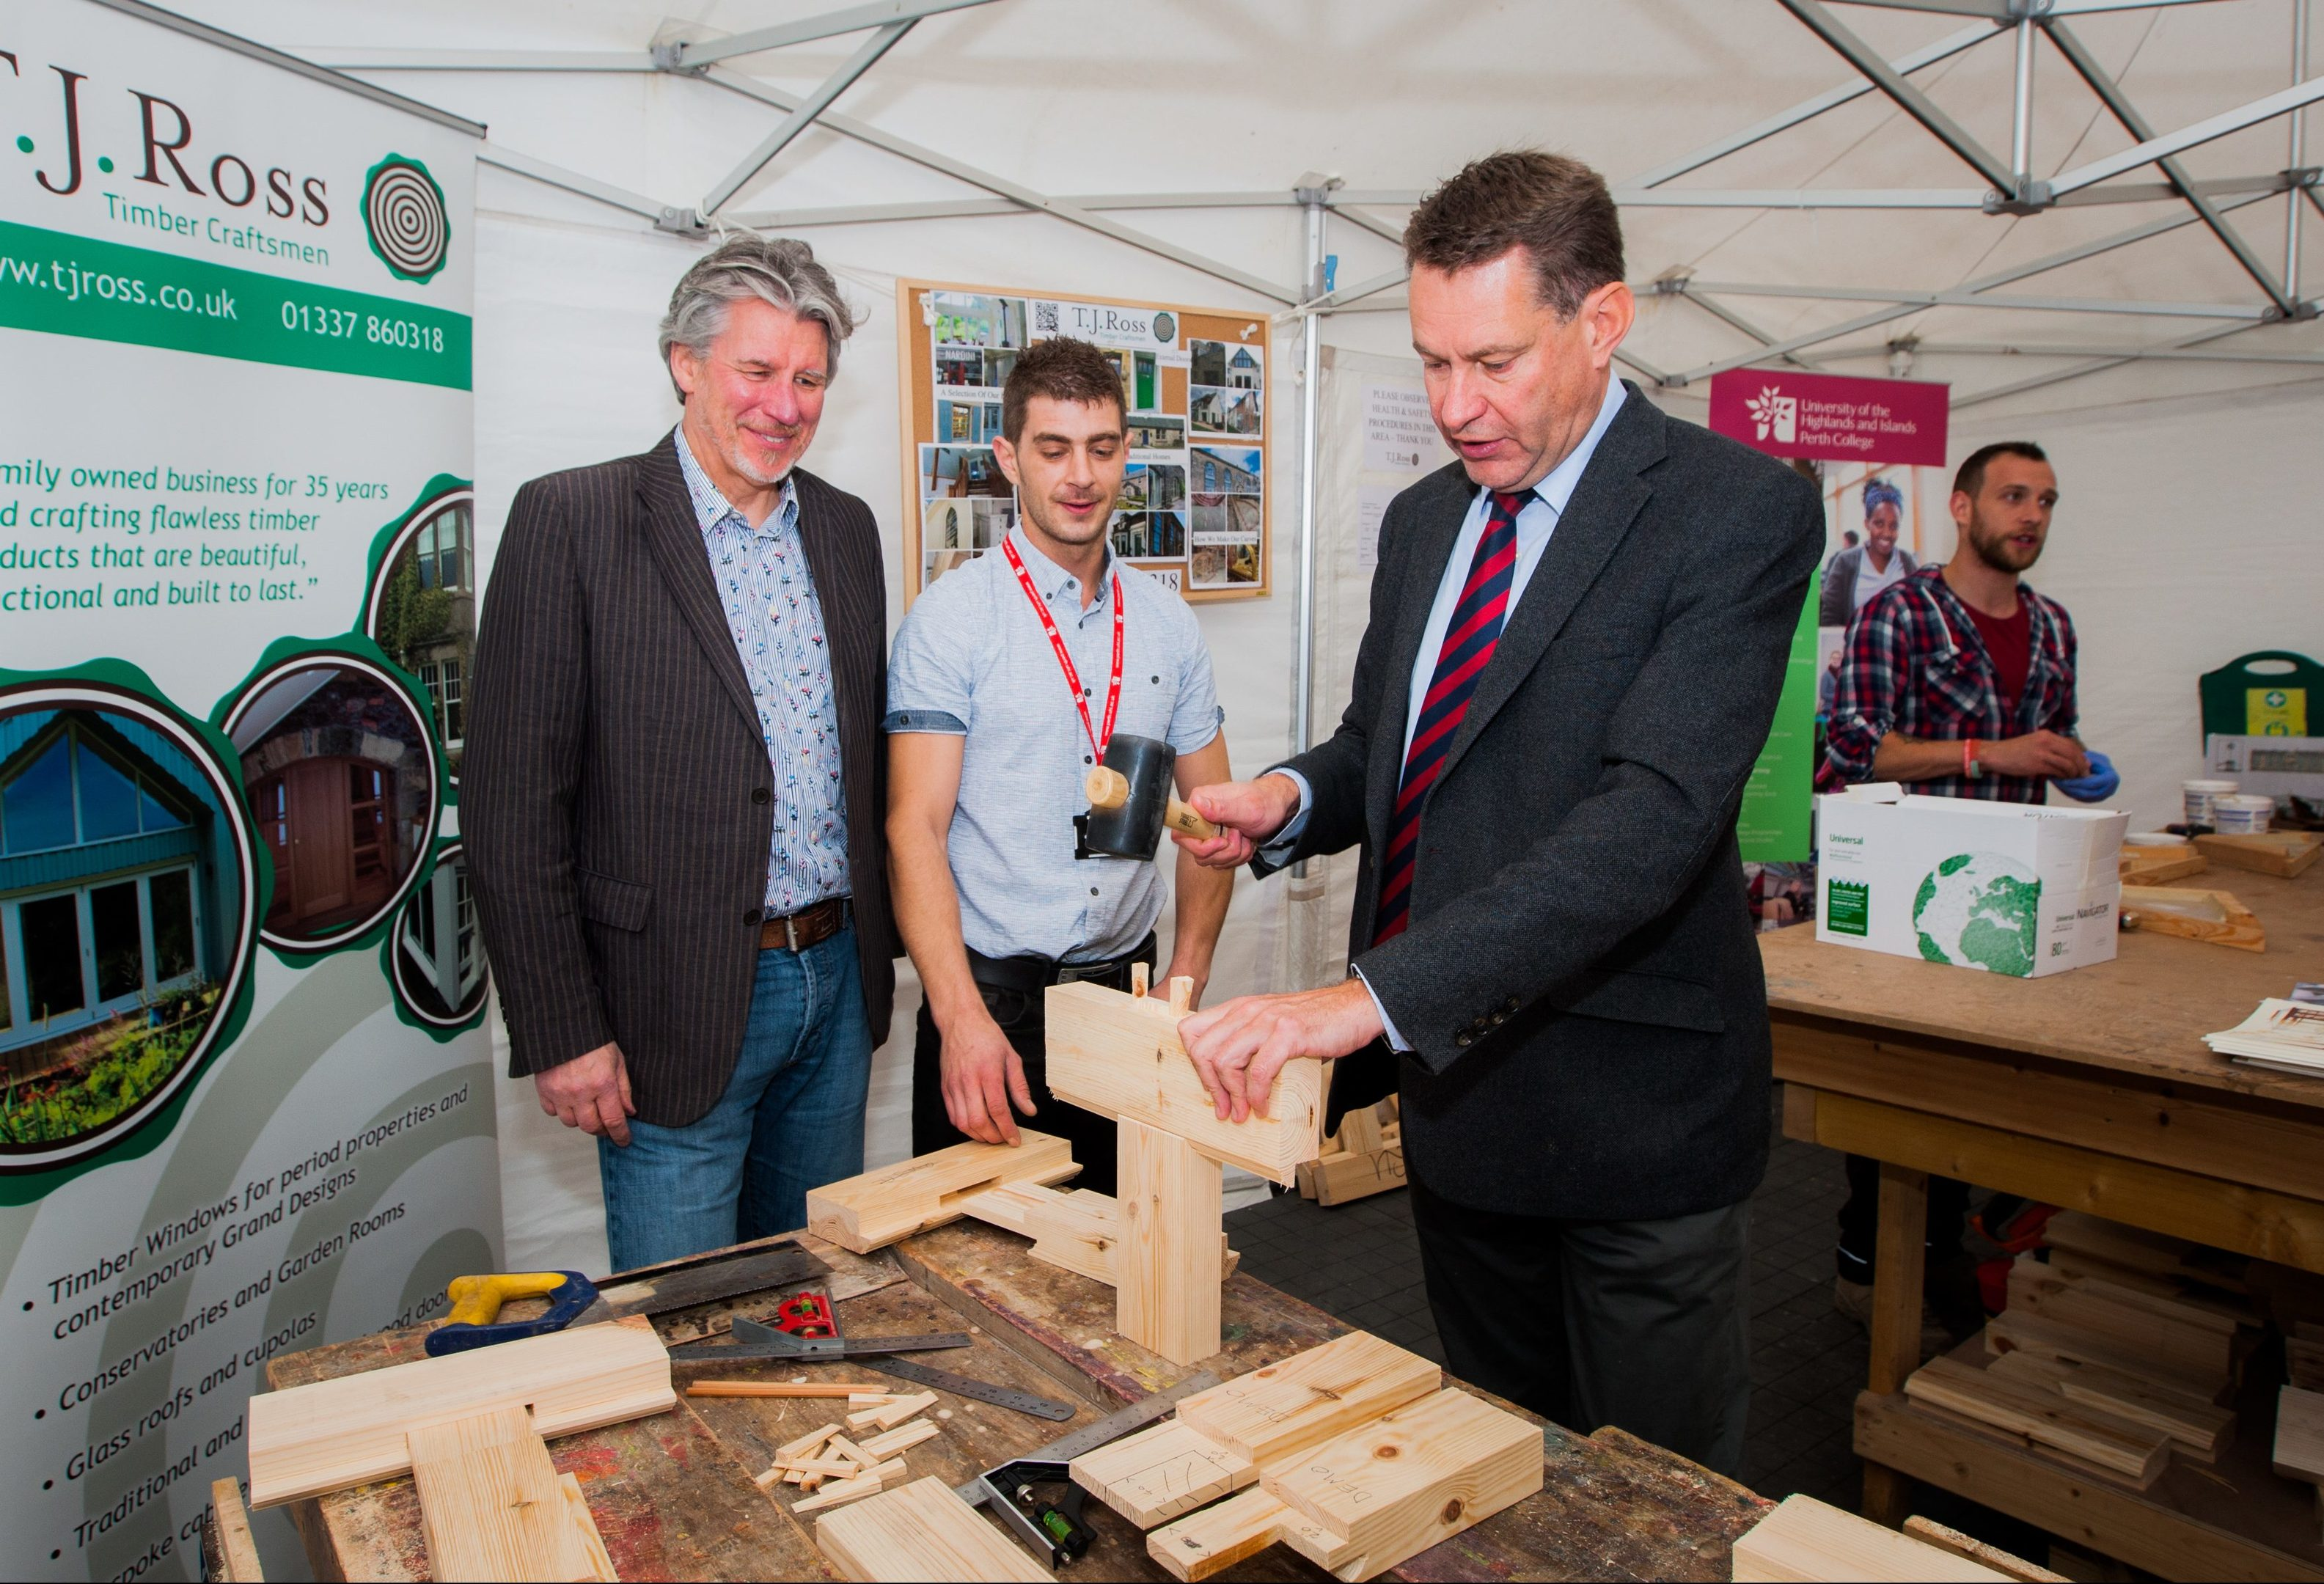 Picture shows left to right, Martin Richardson (owner of TJ Ross Joiners, John Daly (lecturer Perth College UHI (joinery) and Murdo Fraser MSP trying his hand at joinery.